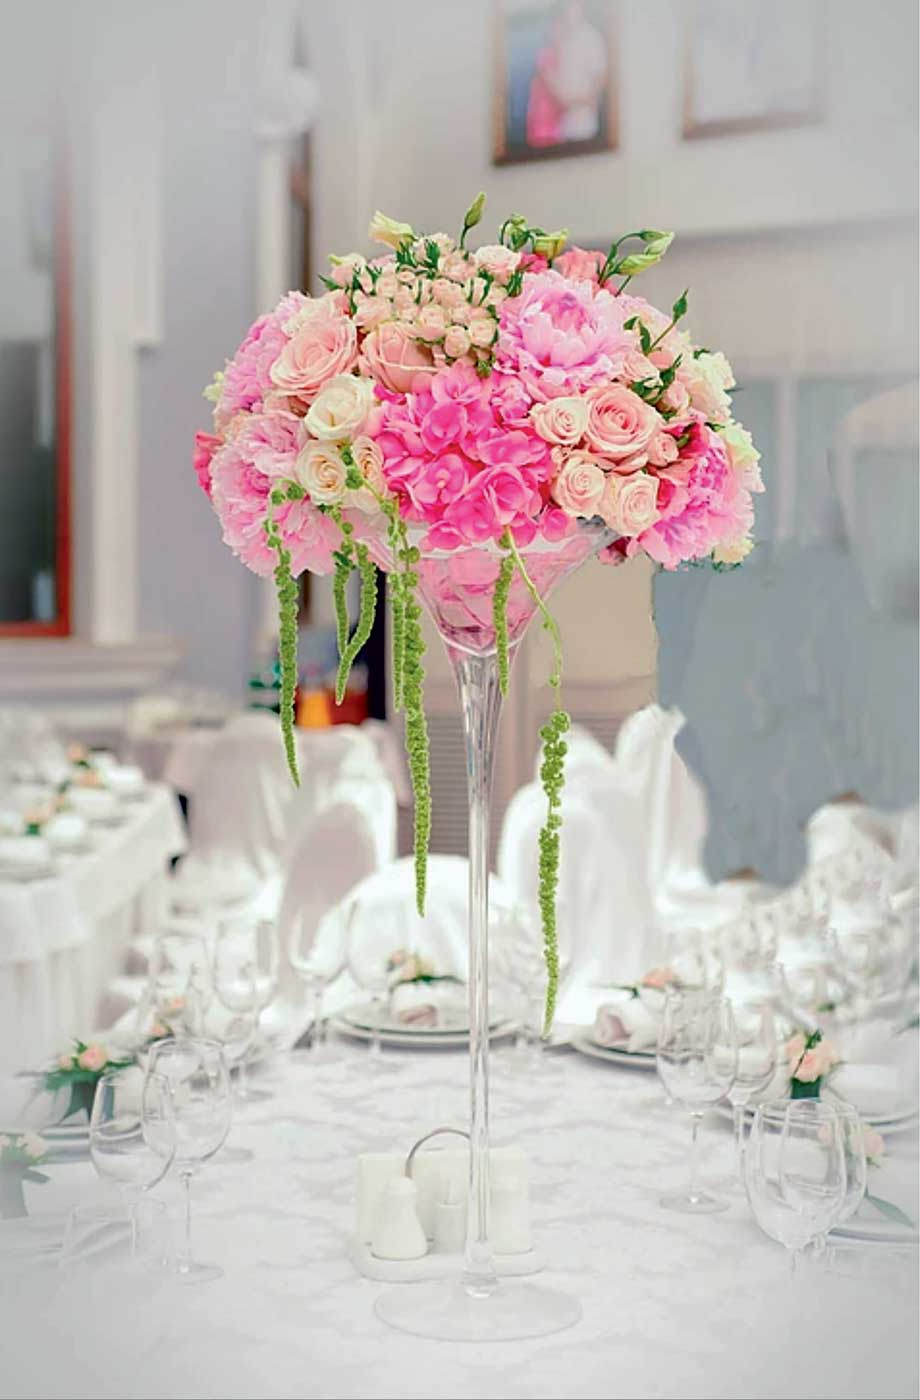 bouquet-rose-blanc-table-mariage